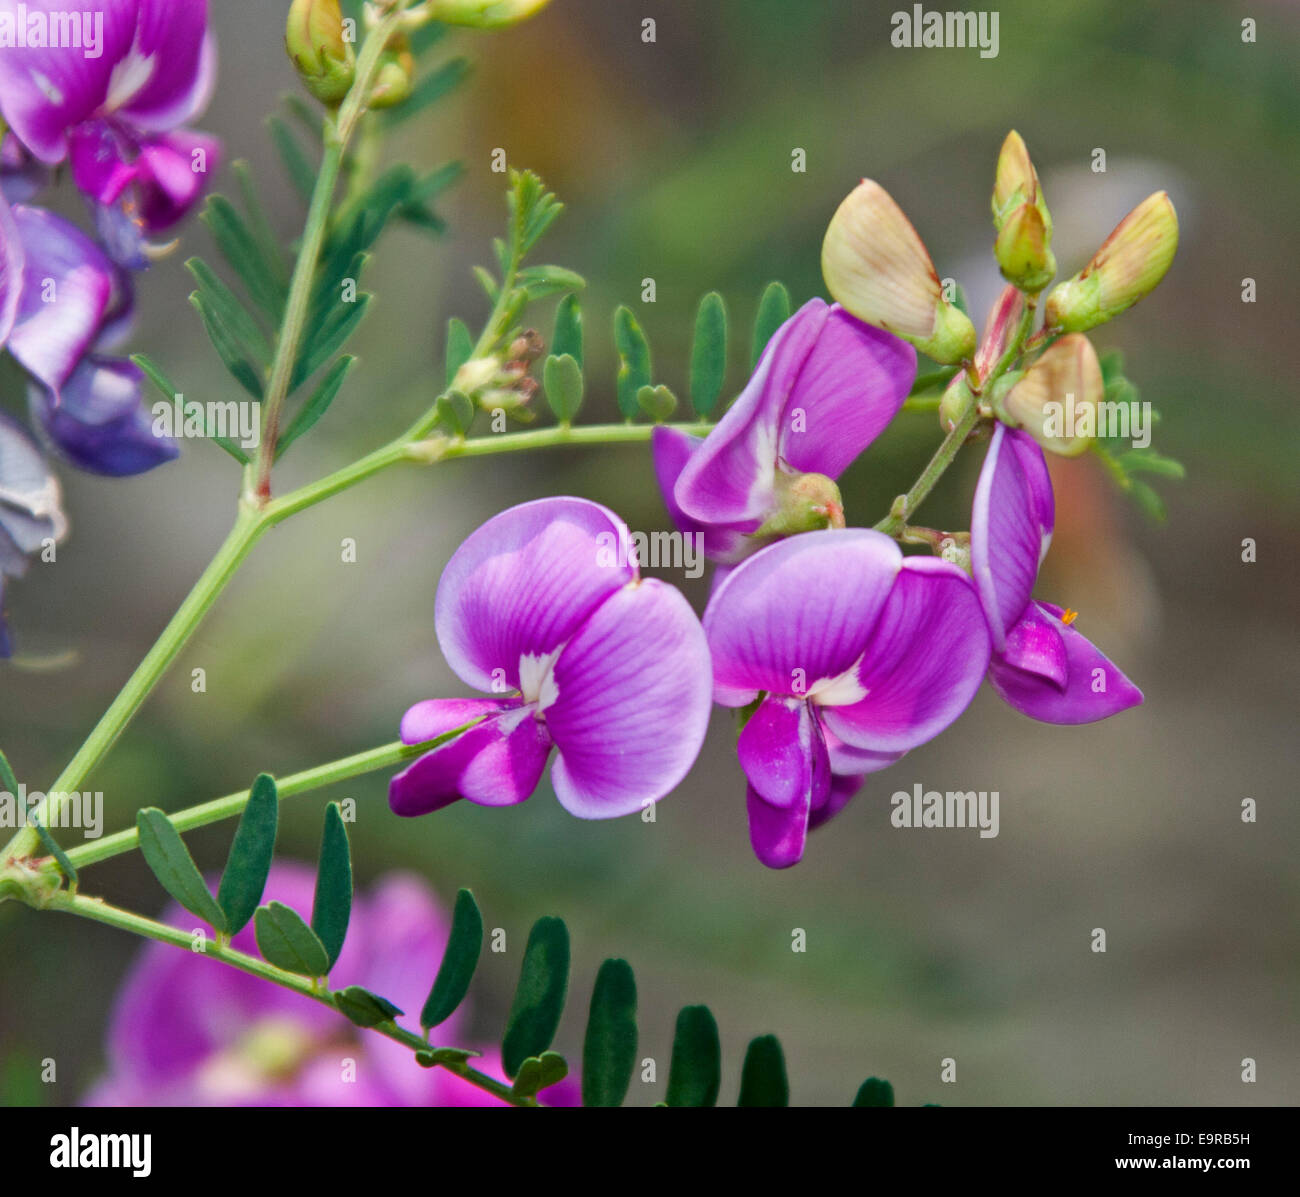 Cluster of beautiful bright pink / magenta flowers, buds & leaves of Swainsona greyana, Darling Pea, an Australian - Stock Image